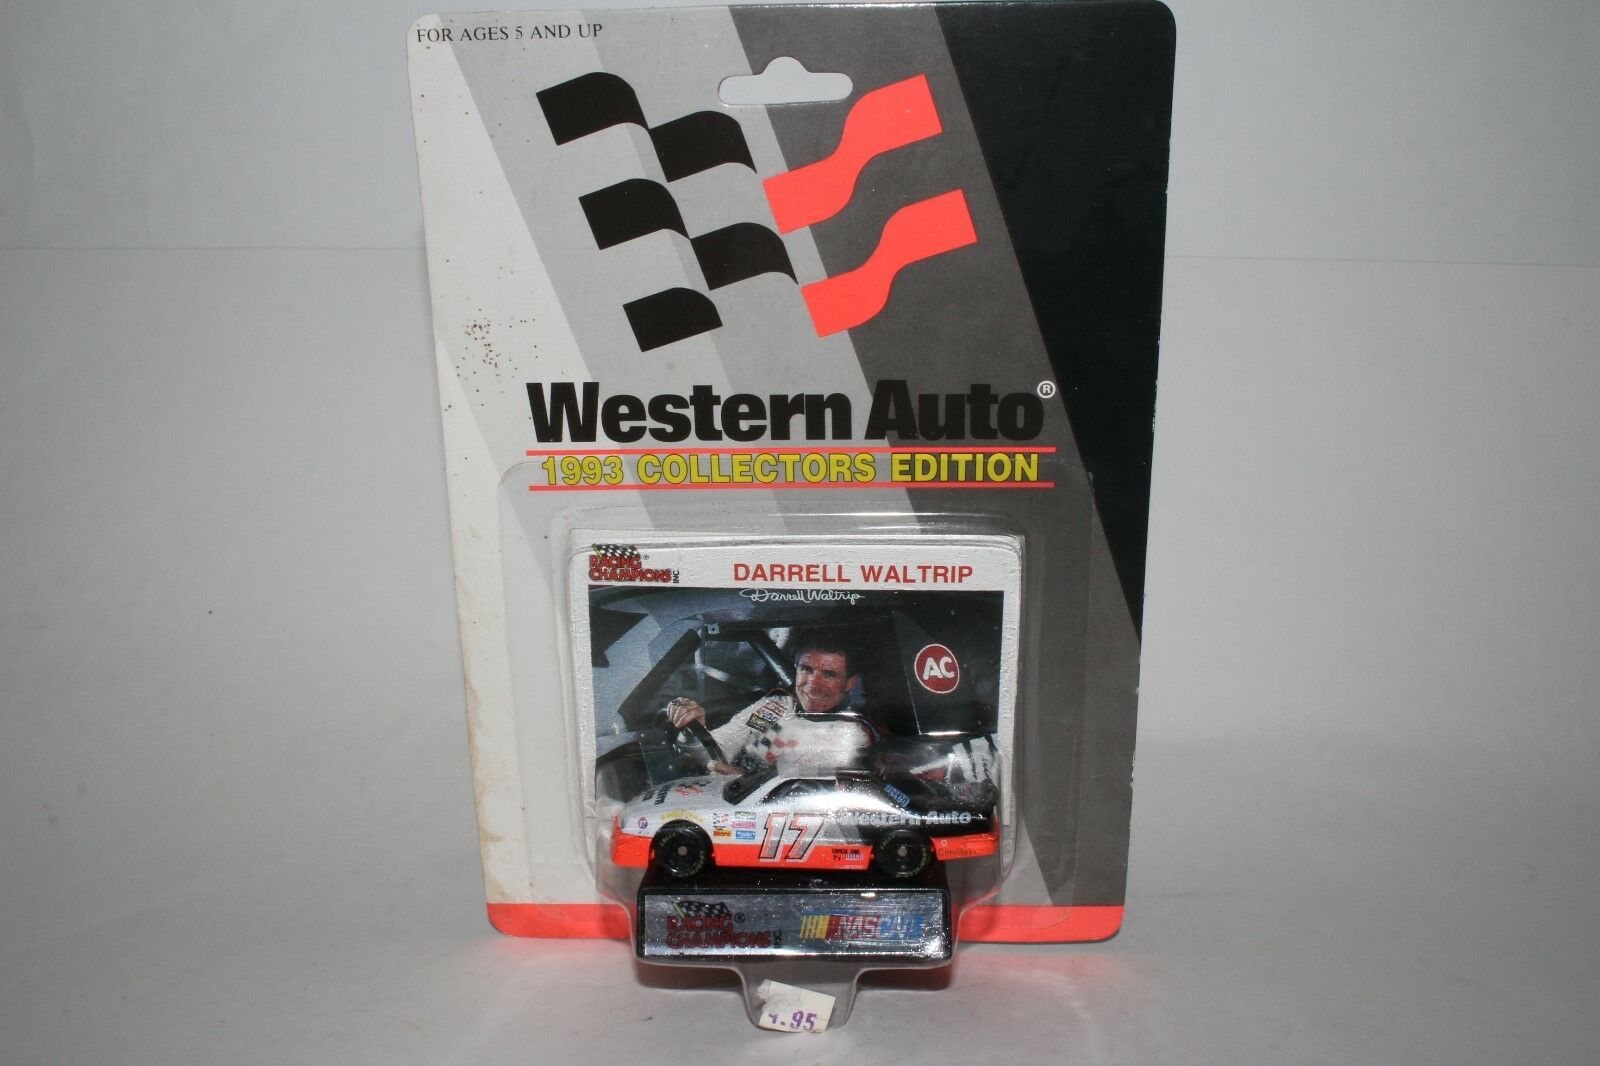 Racing Champions Western Auto 1993 Collectors Edition, Darrell Waltrip